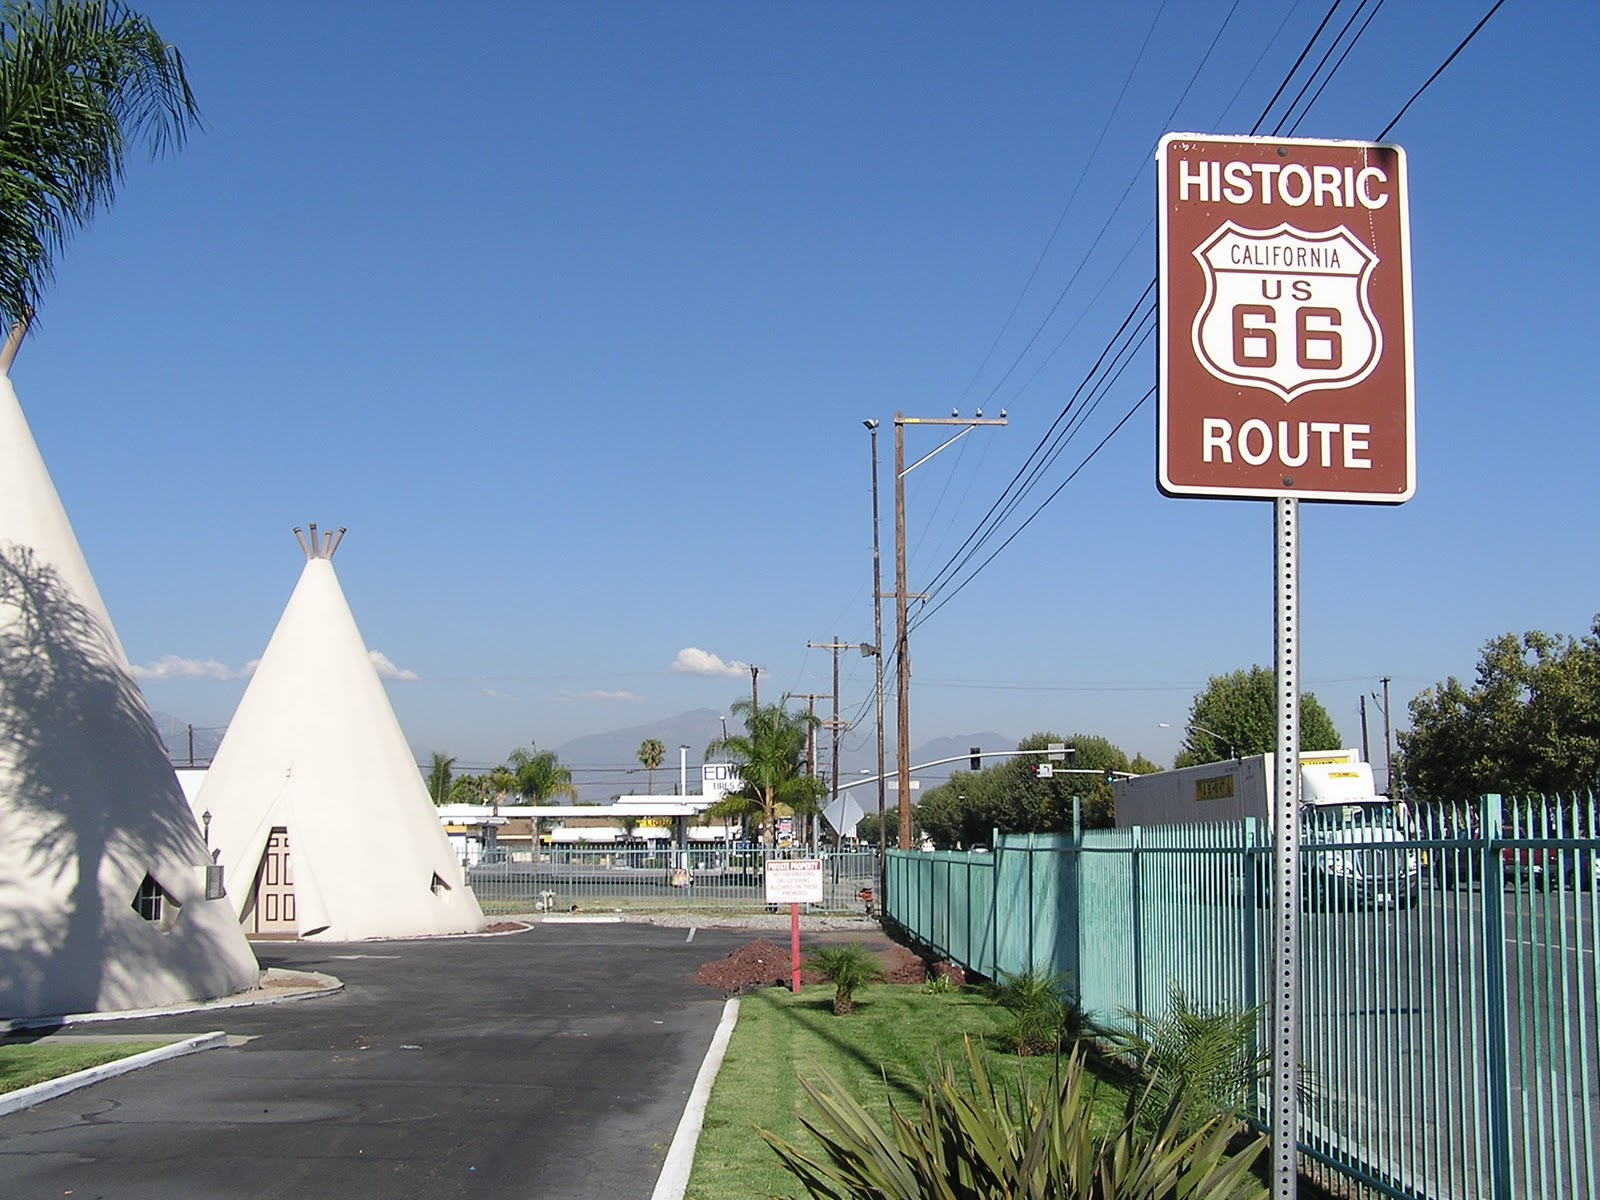 Mike 39 S Historic Buildings La Sidetrip Have You Slept In A Teepee Lately